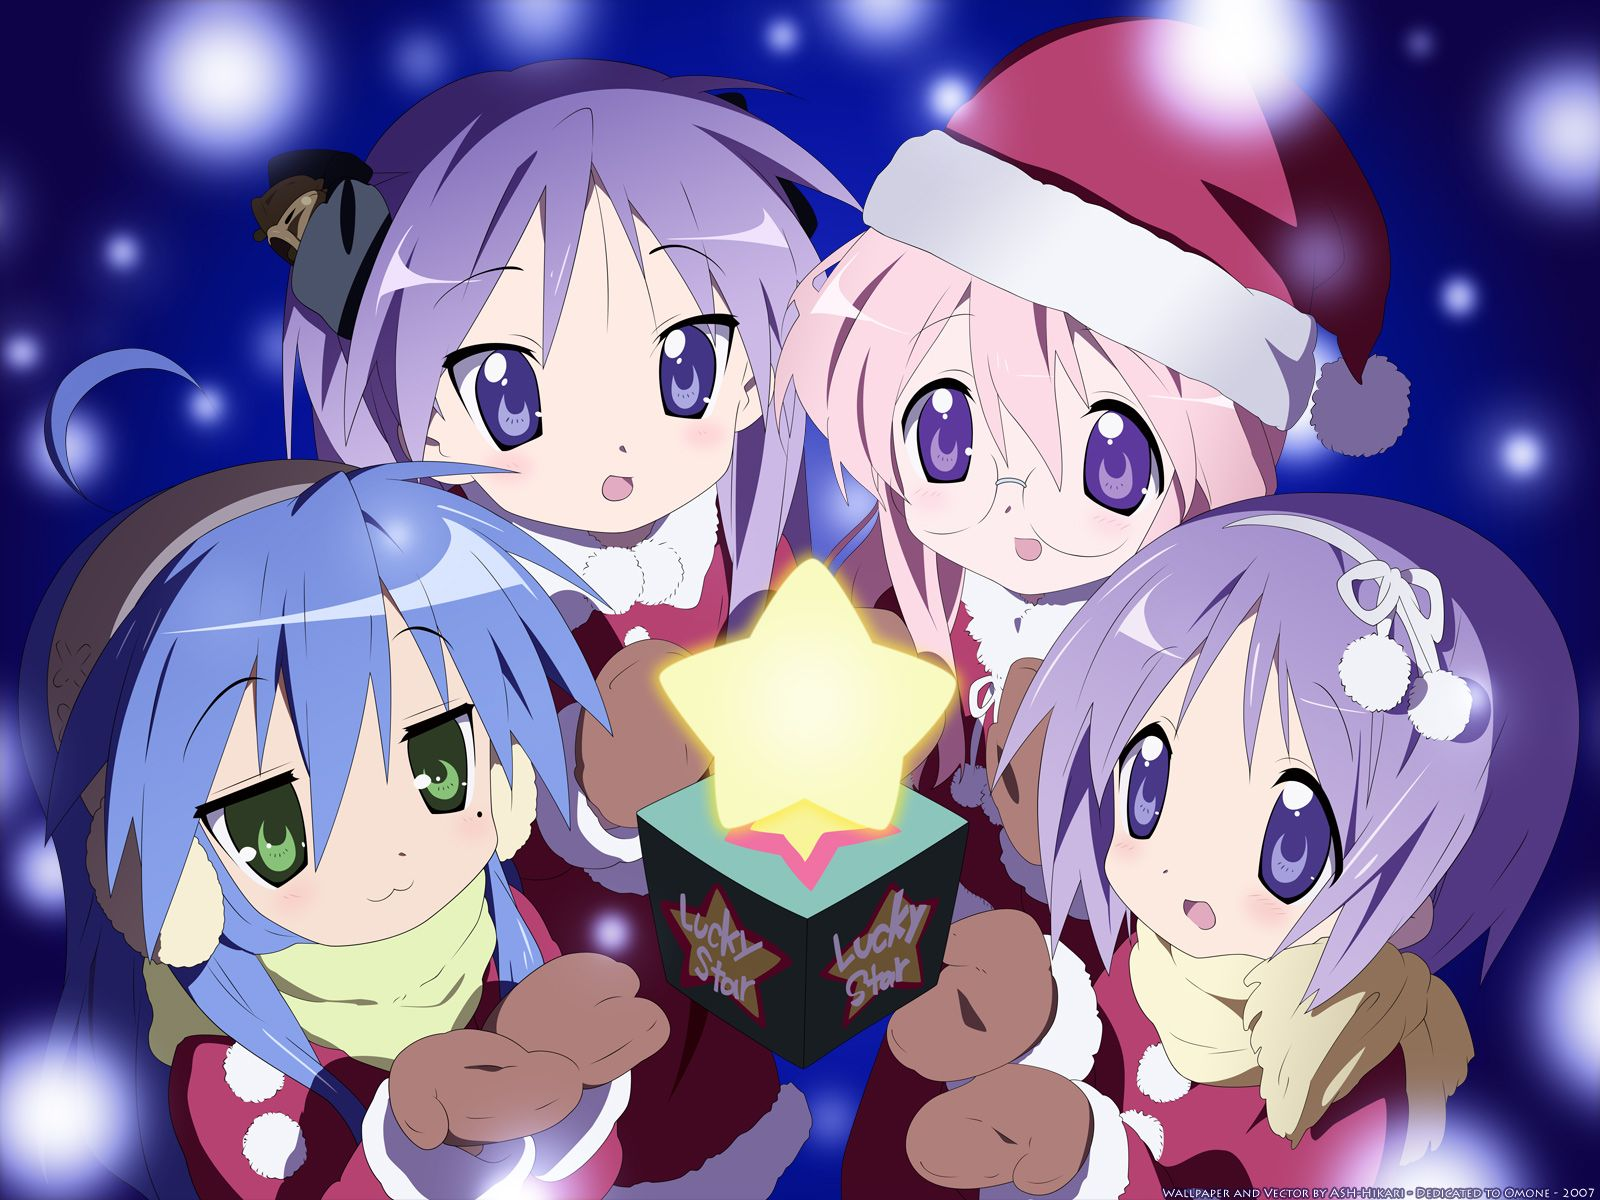 Bleach And Cars Lucky Star Anime Wallpapers Anime Christmas Anime Anime Wallpaper